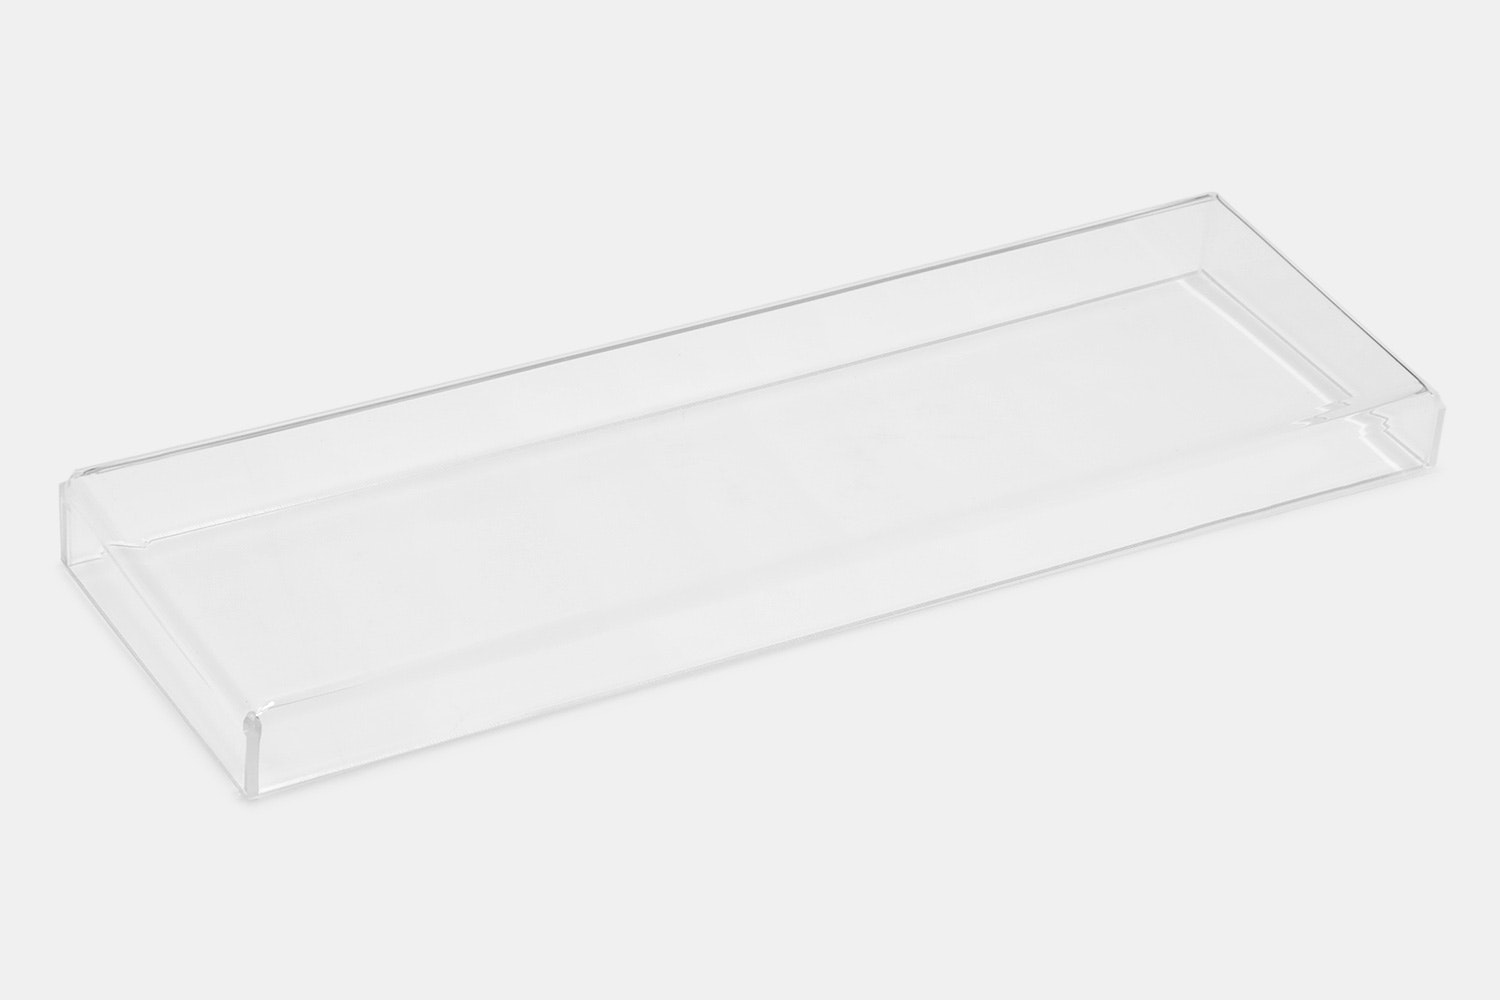 mStone Acrylic Keyboard Dust Cover for 60% Keyboards